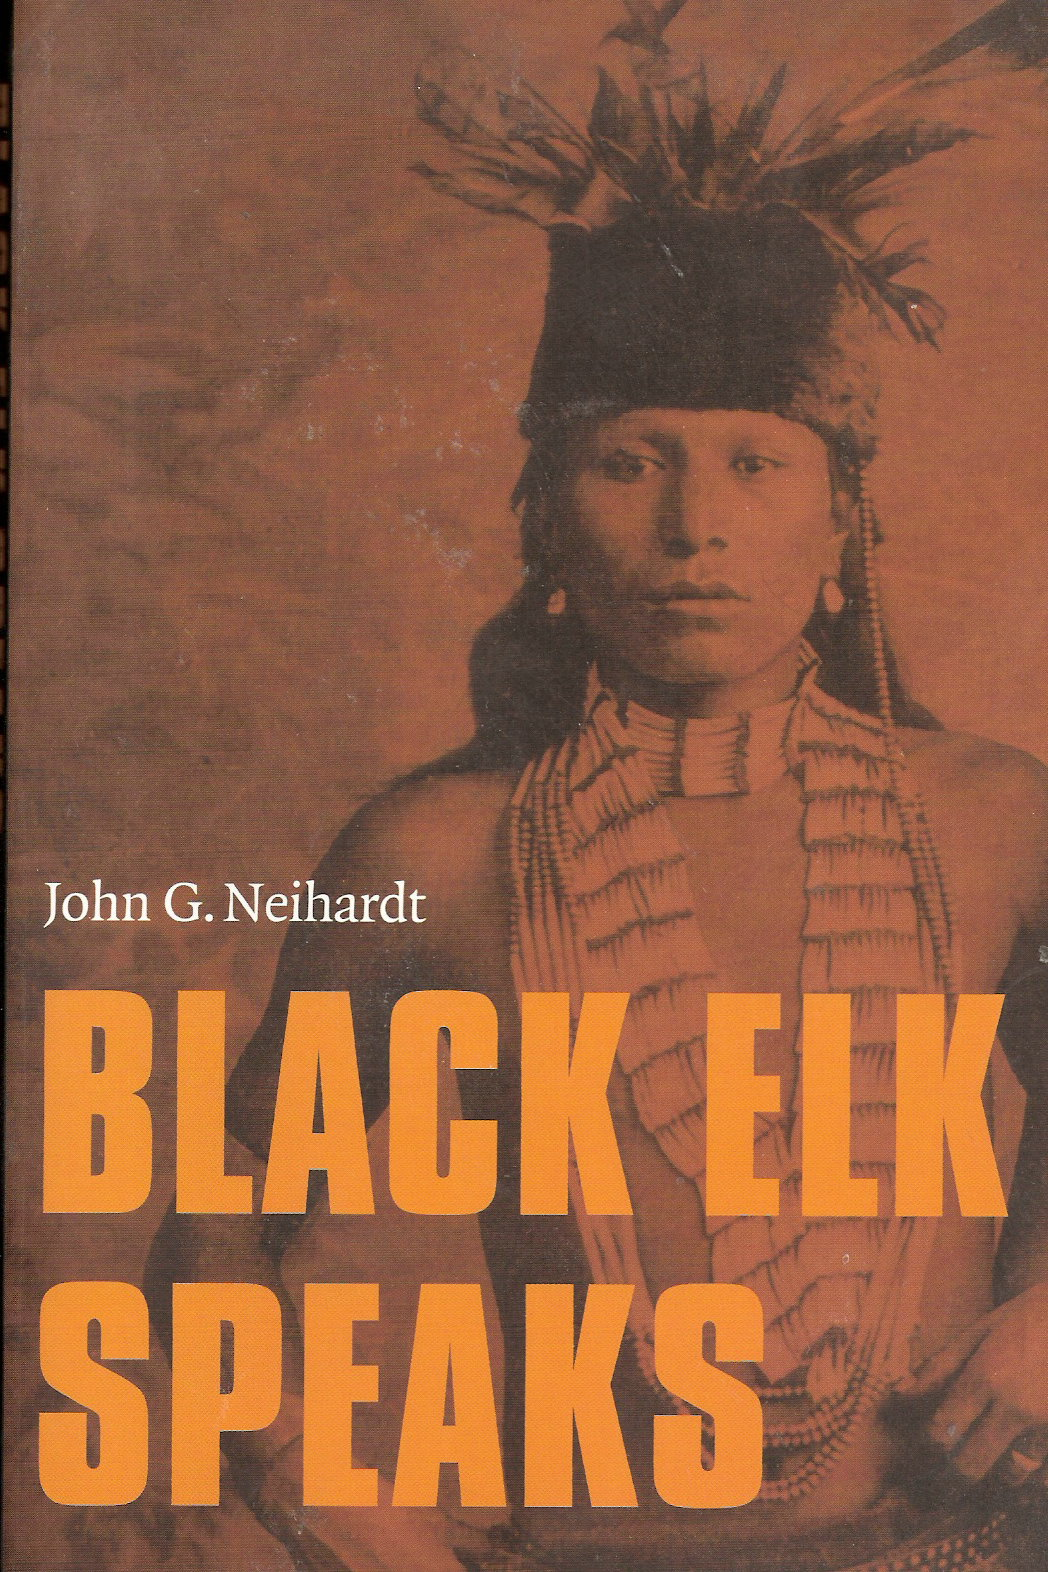 black elk speaks 2 essay Black elk speaks, the story of the oglala lakota visionary and healer nicholas black elk (1863–1950) and his people during momentous twilight years of the nineteenth century, offers readers much more than a precious glimpse of a vanished time.